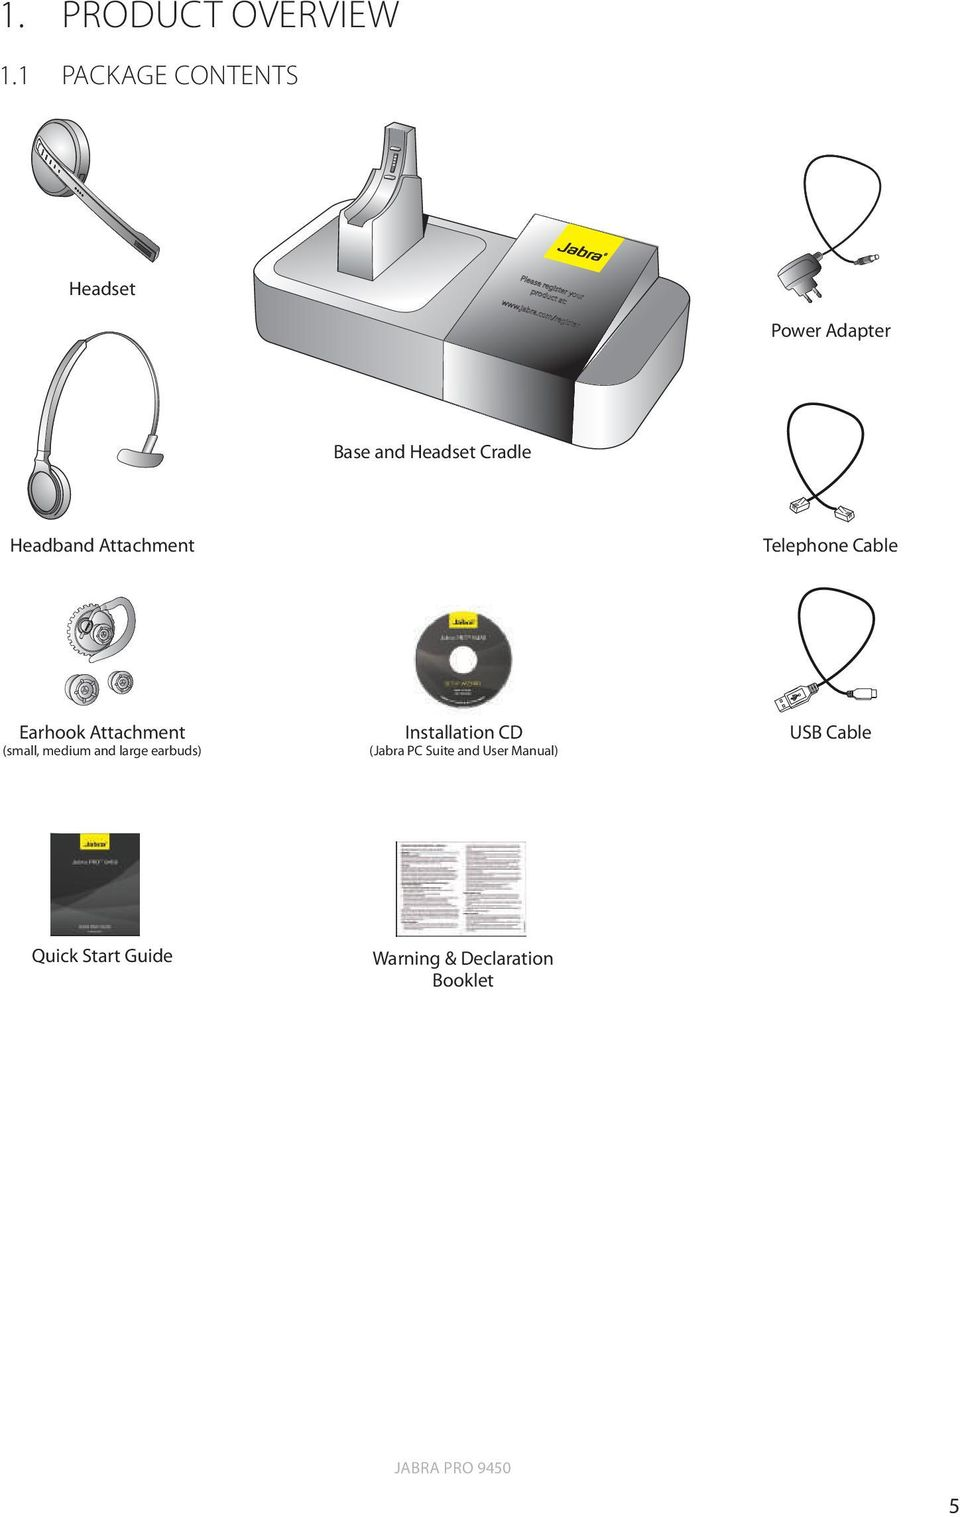 How To Use The Jabra Pro 9450 With A Desk Phone And A Bluetooth Headset Pdf Free Download